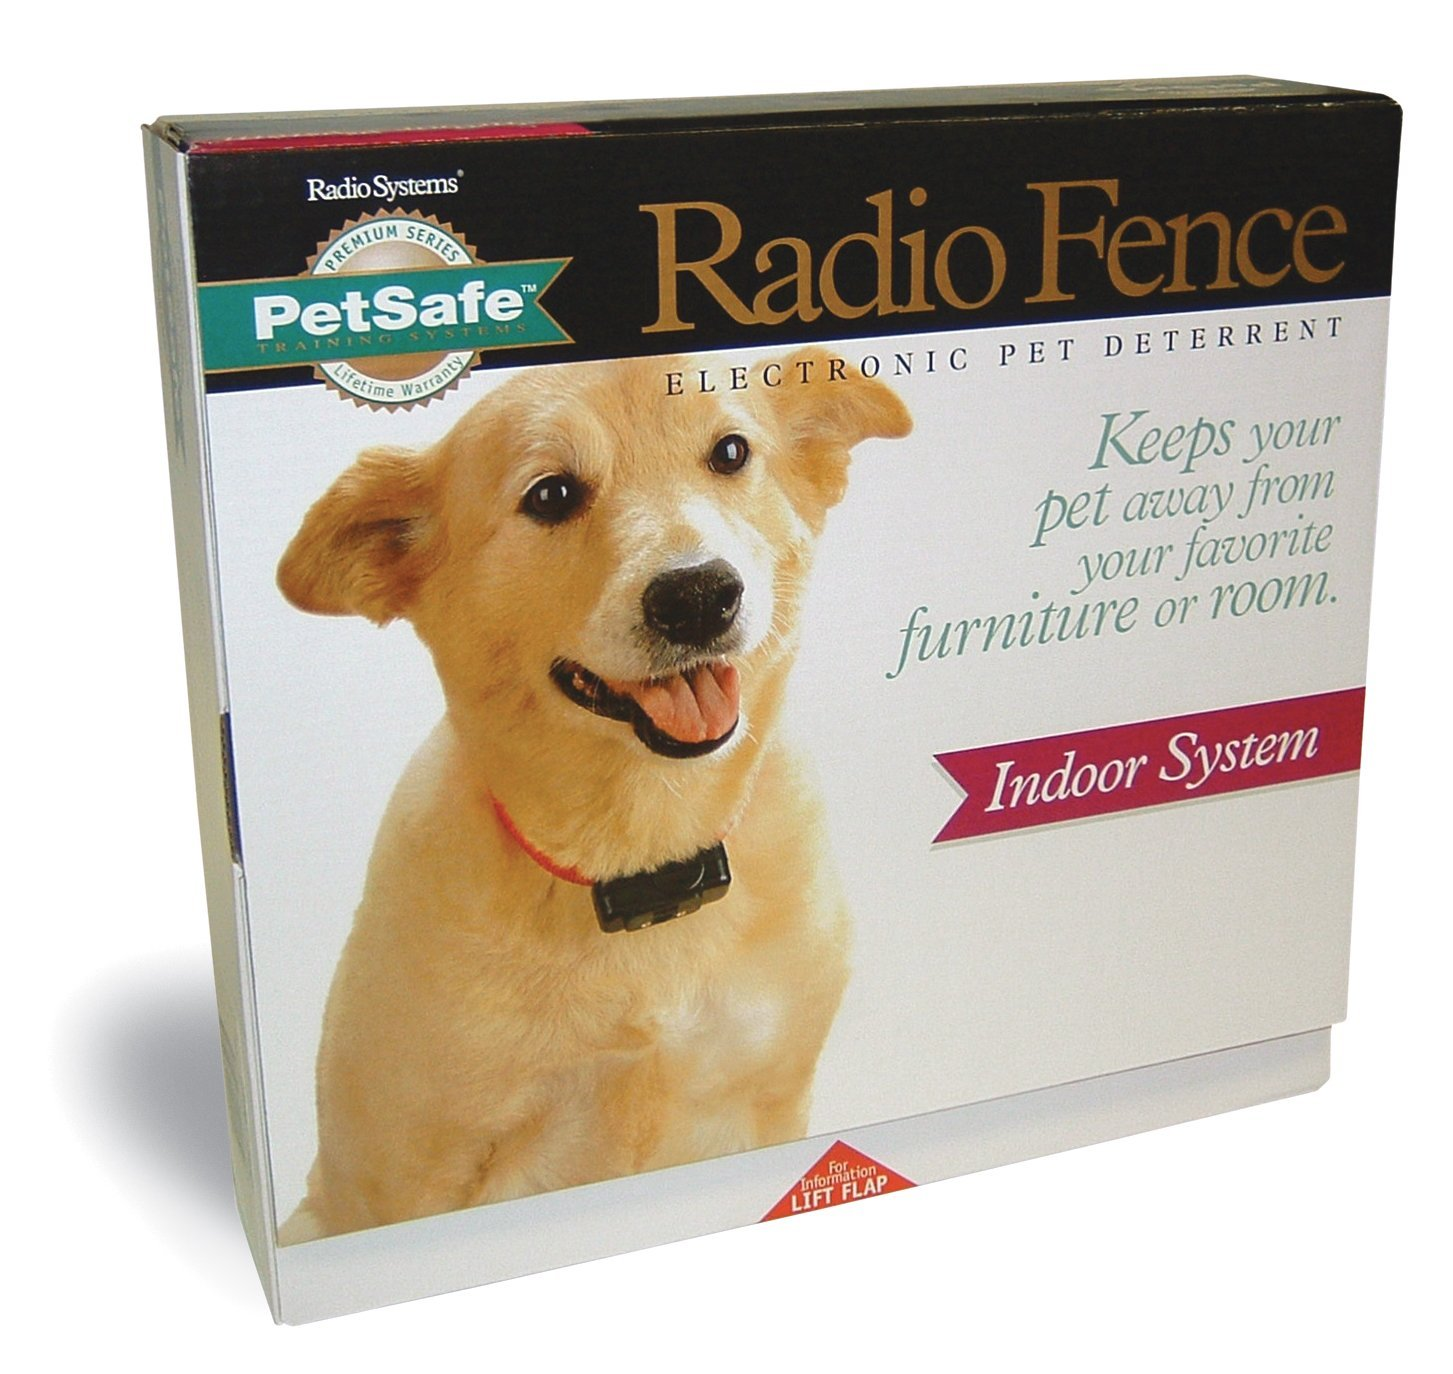 Amazon.com : PetSafe Indoor Radio Fence : PetSafe : Wireless Pet ...